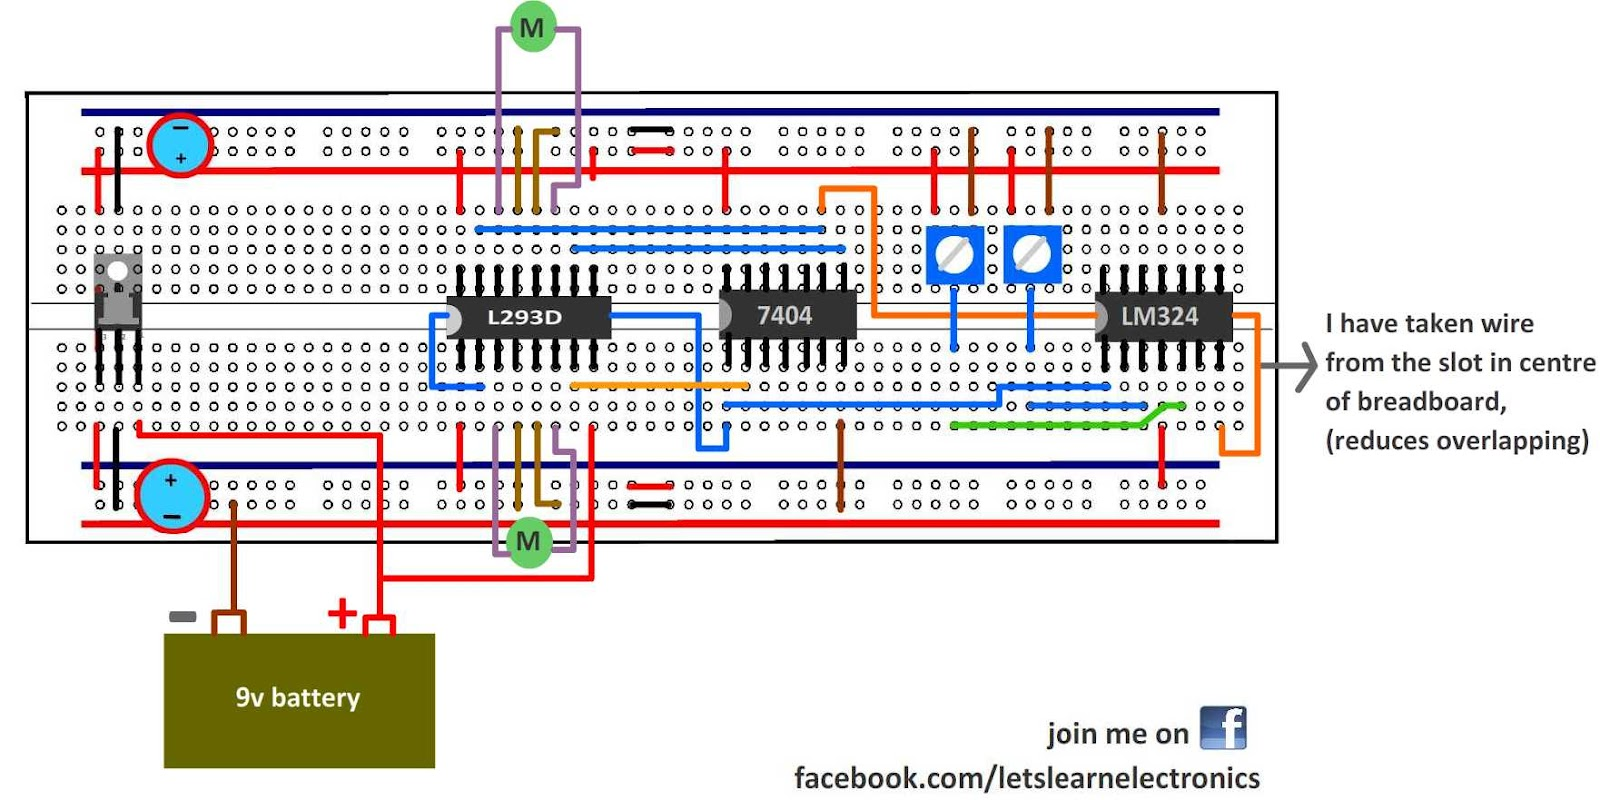 Wireless Communication Setting Up Simple Step 3 Learn Electronics By Building Circuits From Circuit Diagrams Lets